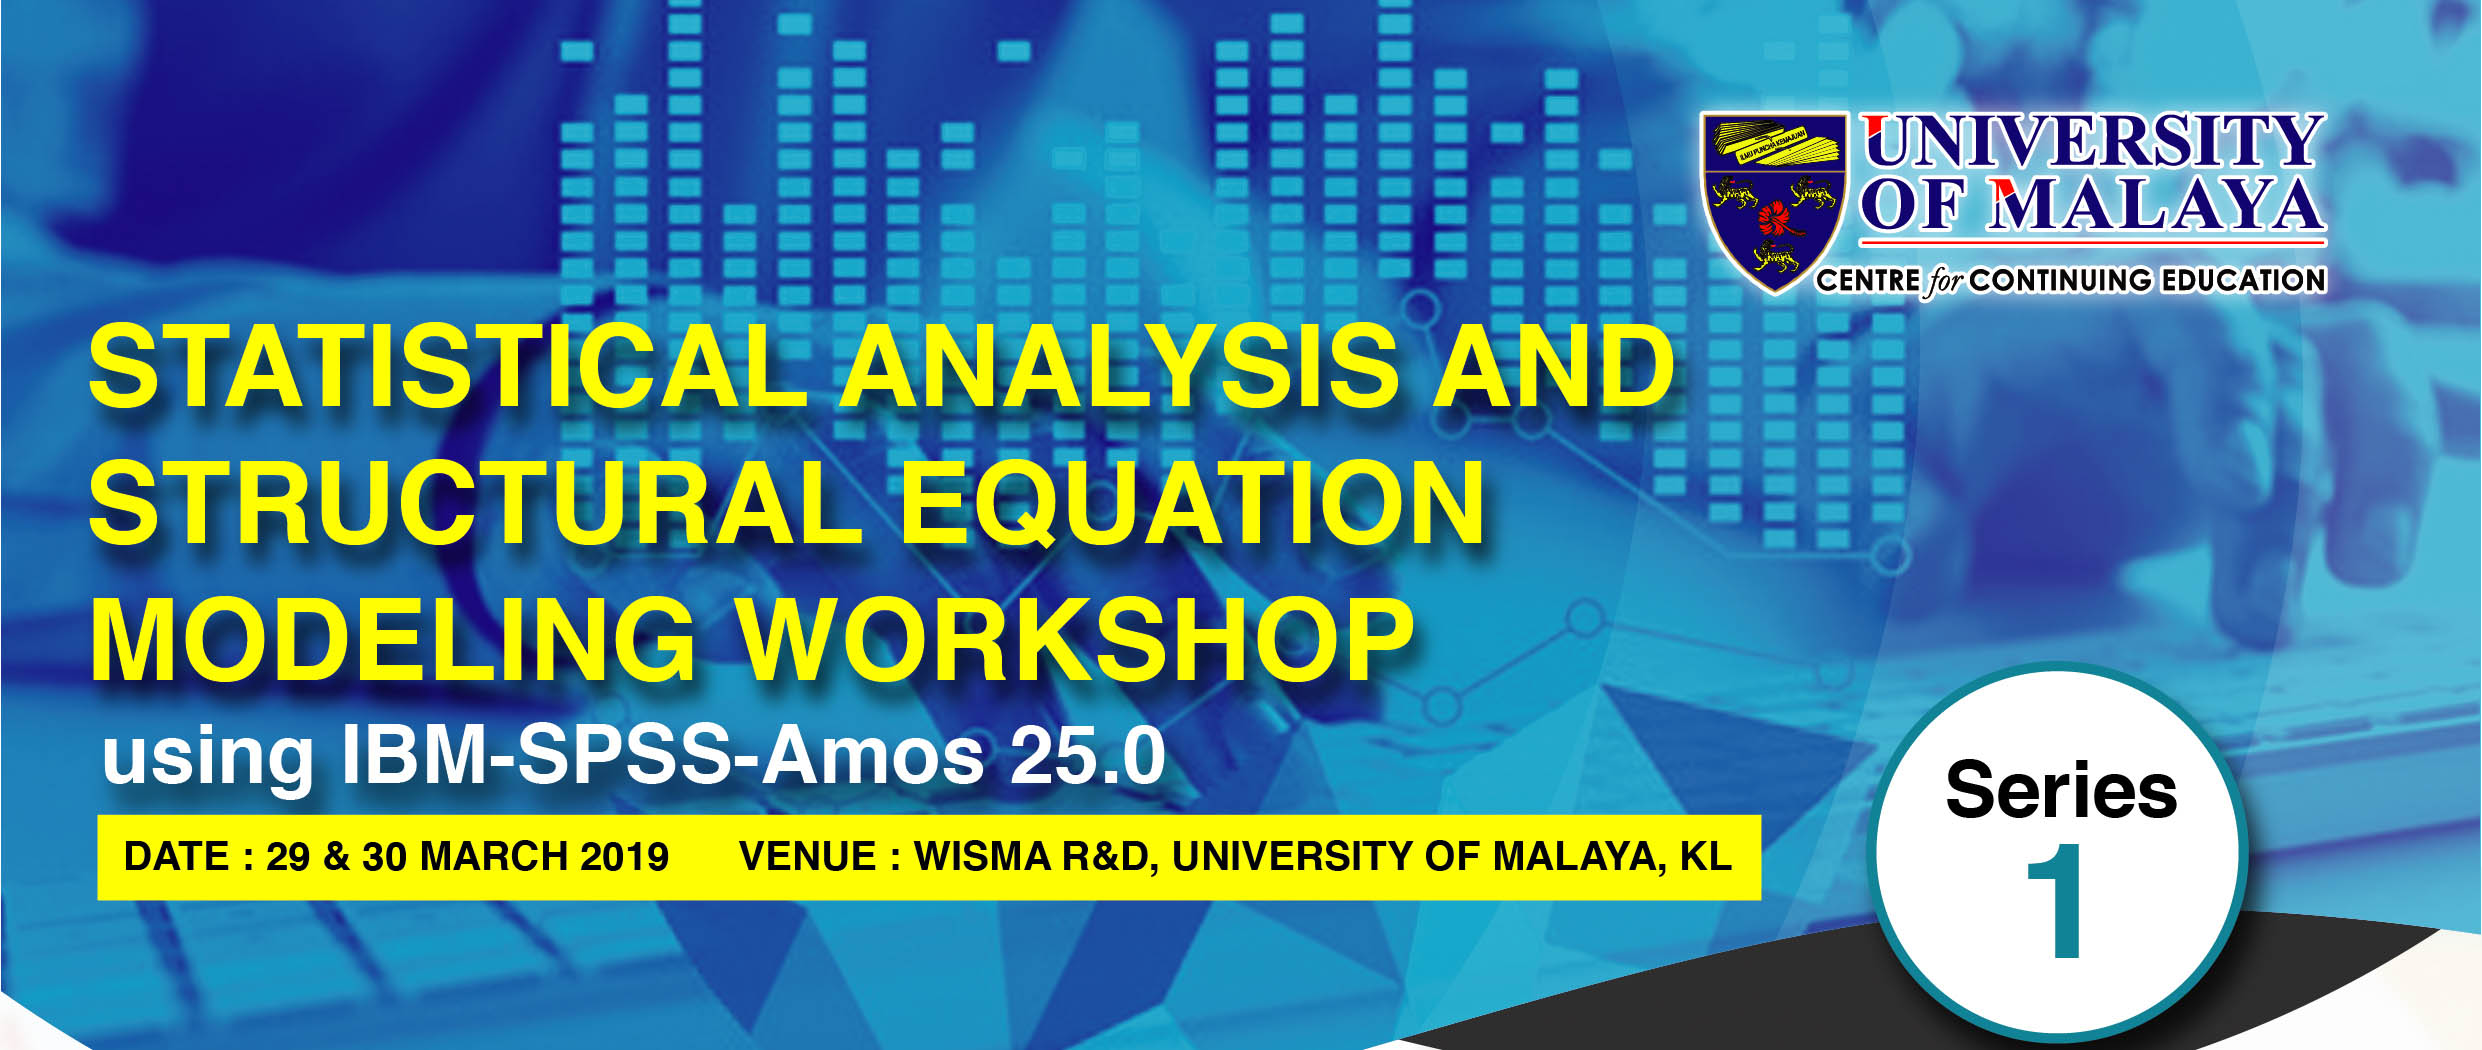 Two Days Workshop on Statistical Analysis and Structural Equation Modeling using IBM-SPSS-Amos 25.0.